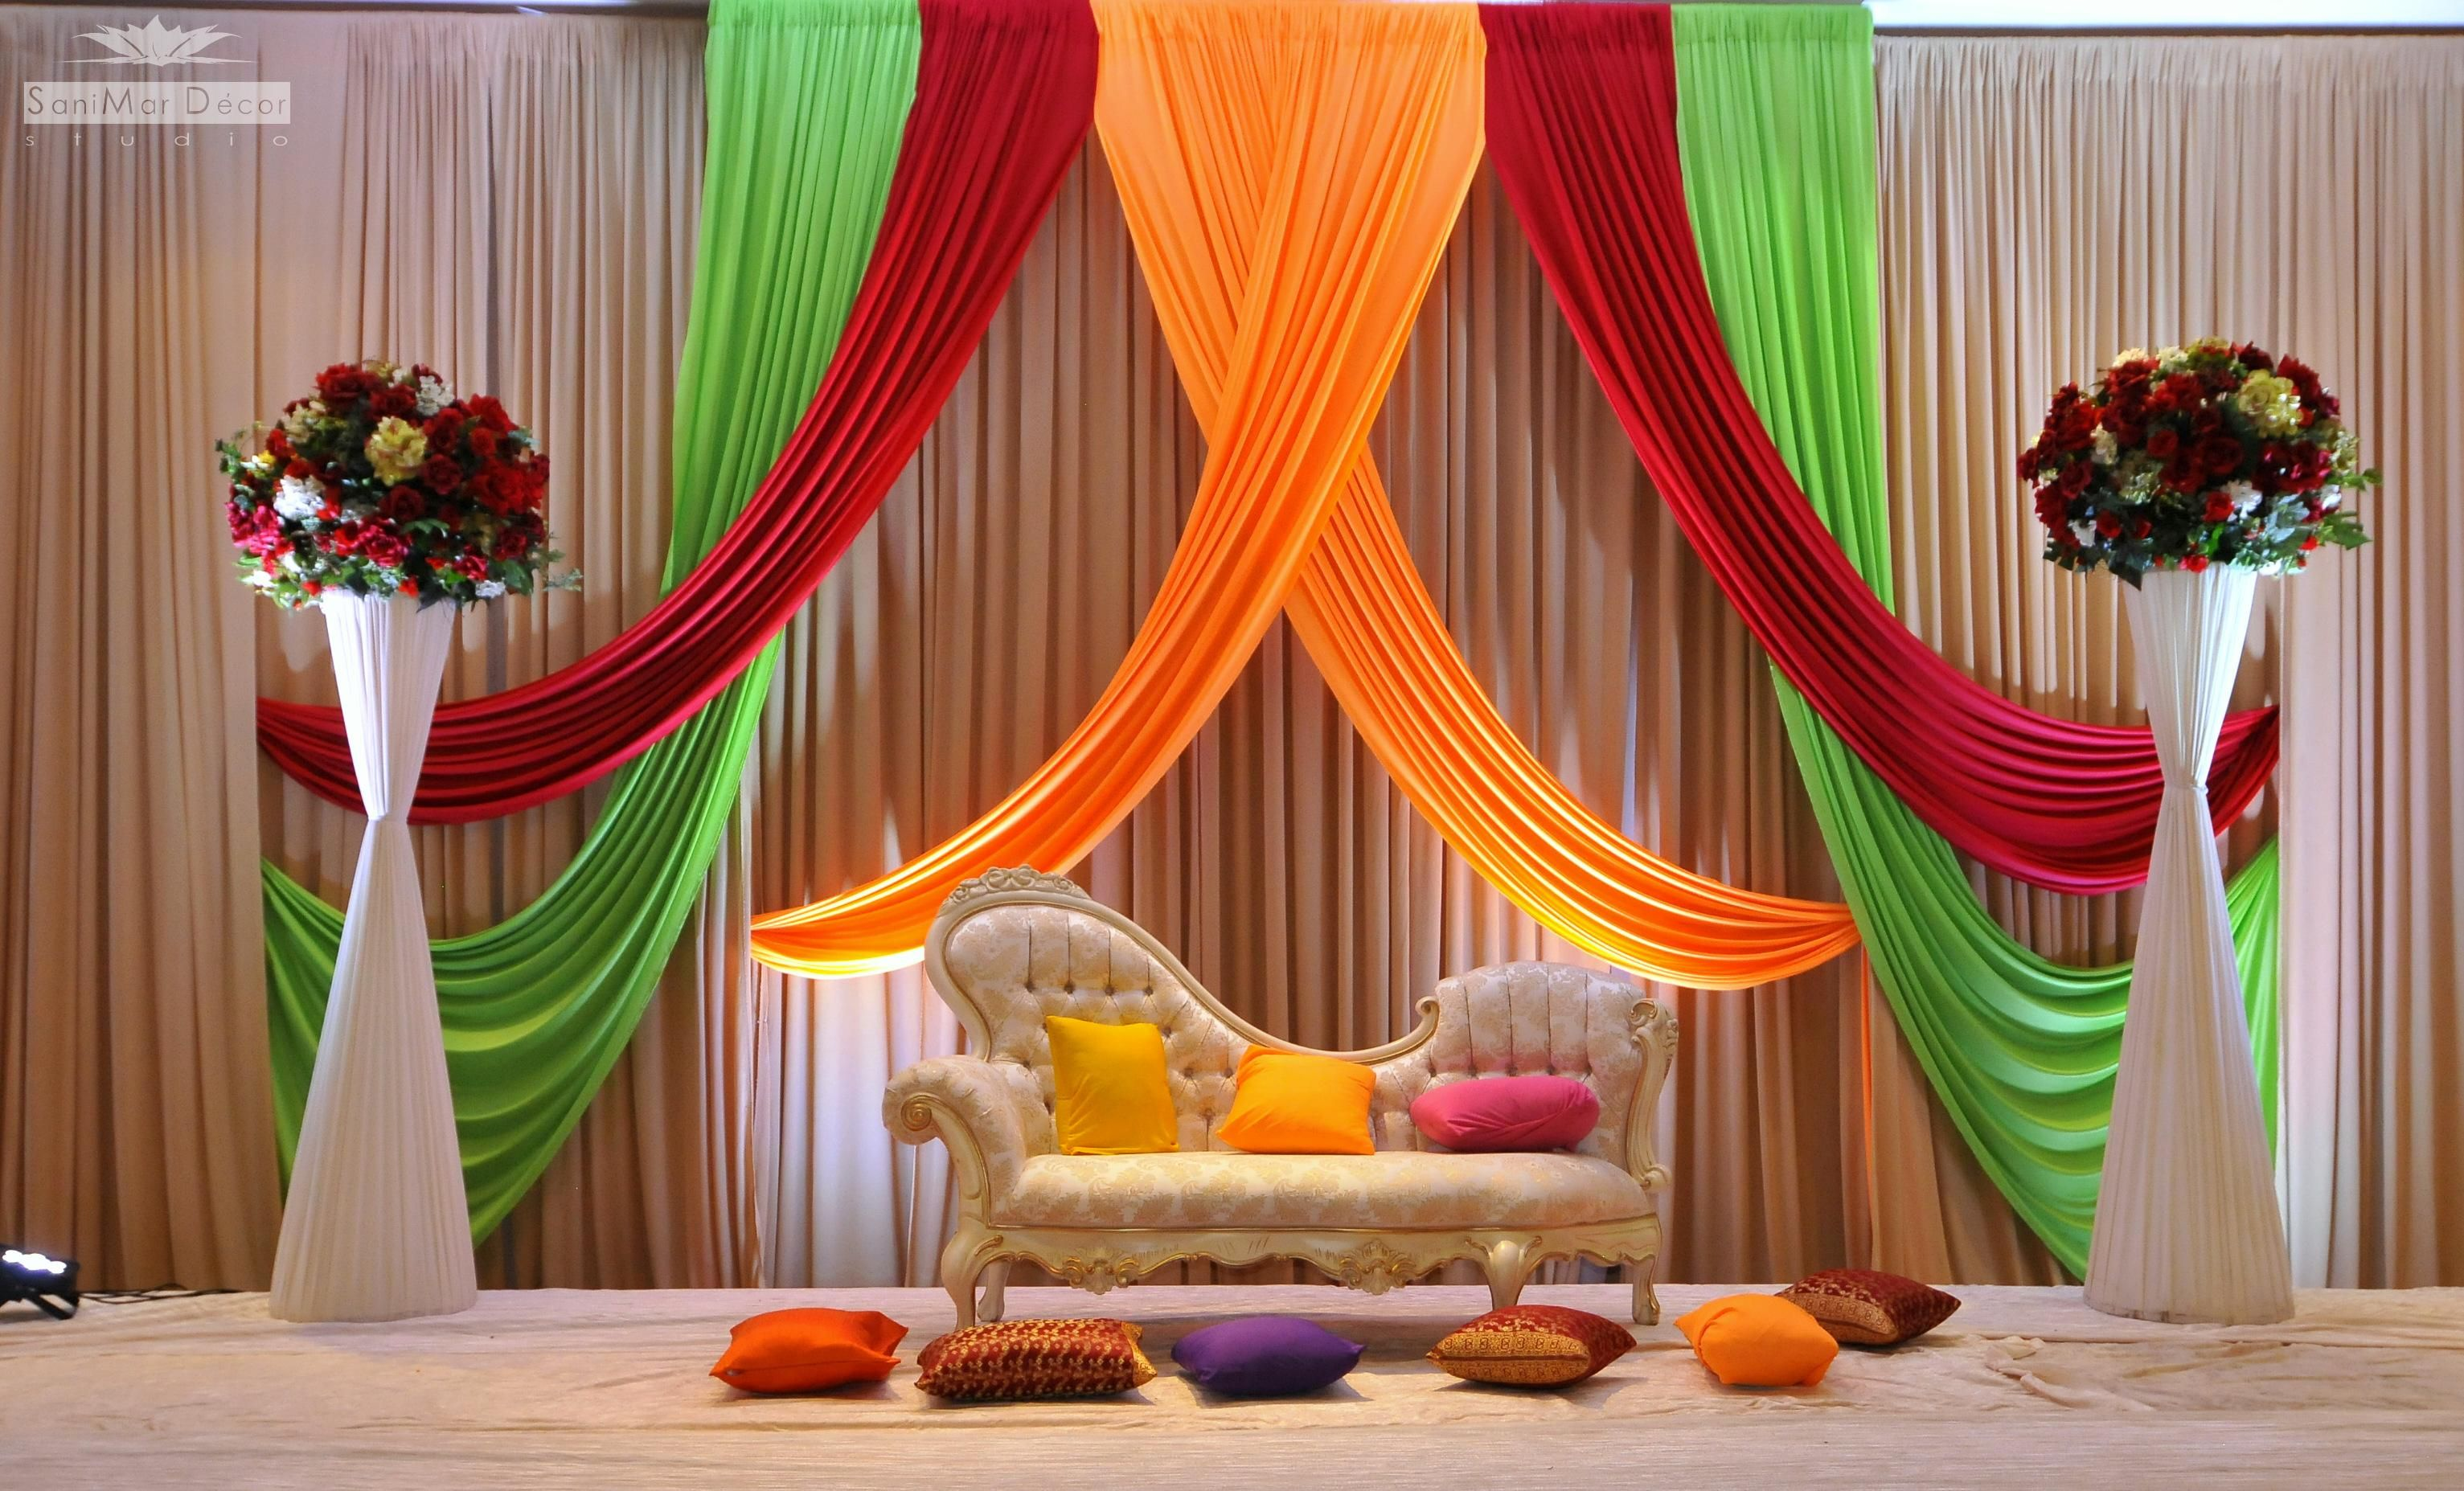 Wedding stage decoration wedding decorations natural for Marriage decoration photos